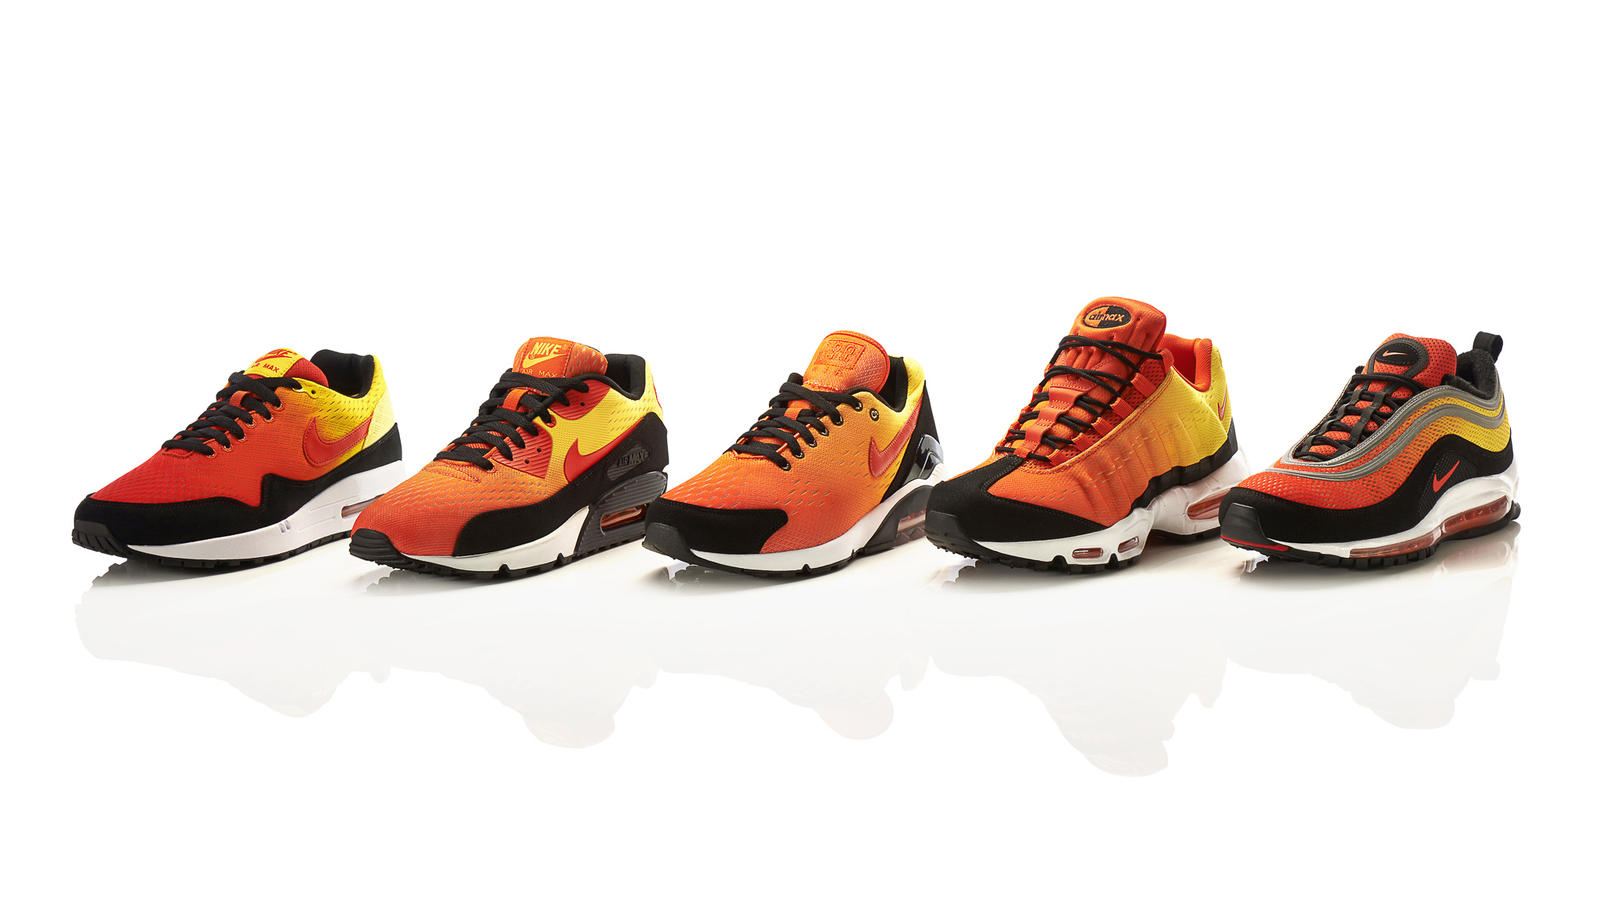 online retailer 051c3 9339b nsw_air_max_sunset_group_2048. sunset_180_profile_2048.  sunset_air_max_1_profile_2048. nsw_air_max_90_profile_2048.  sunset_air_max_95_profile_2048